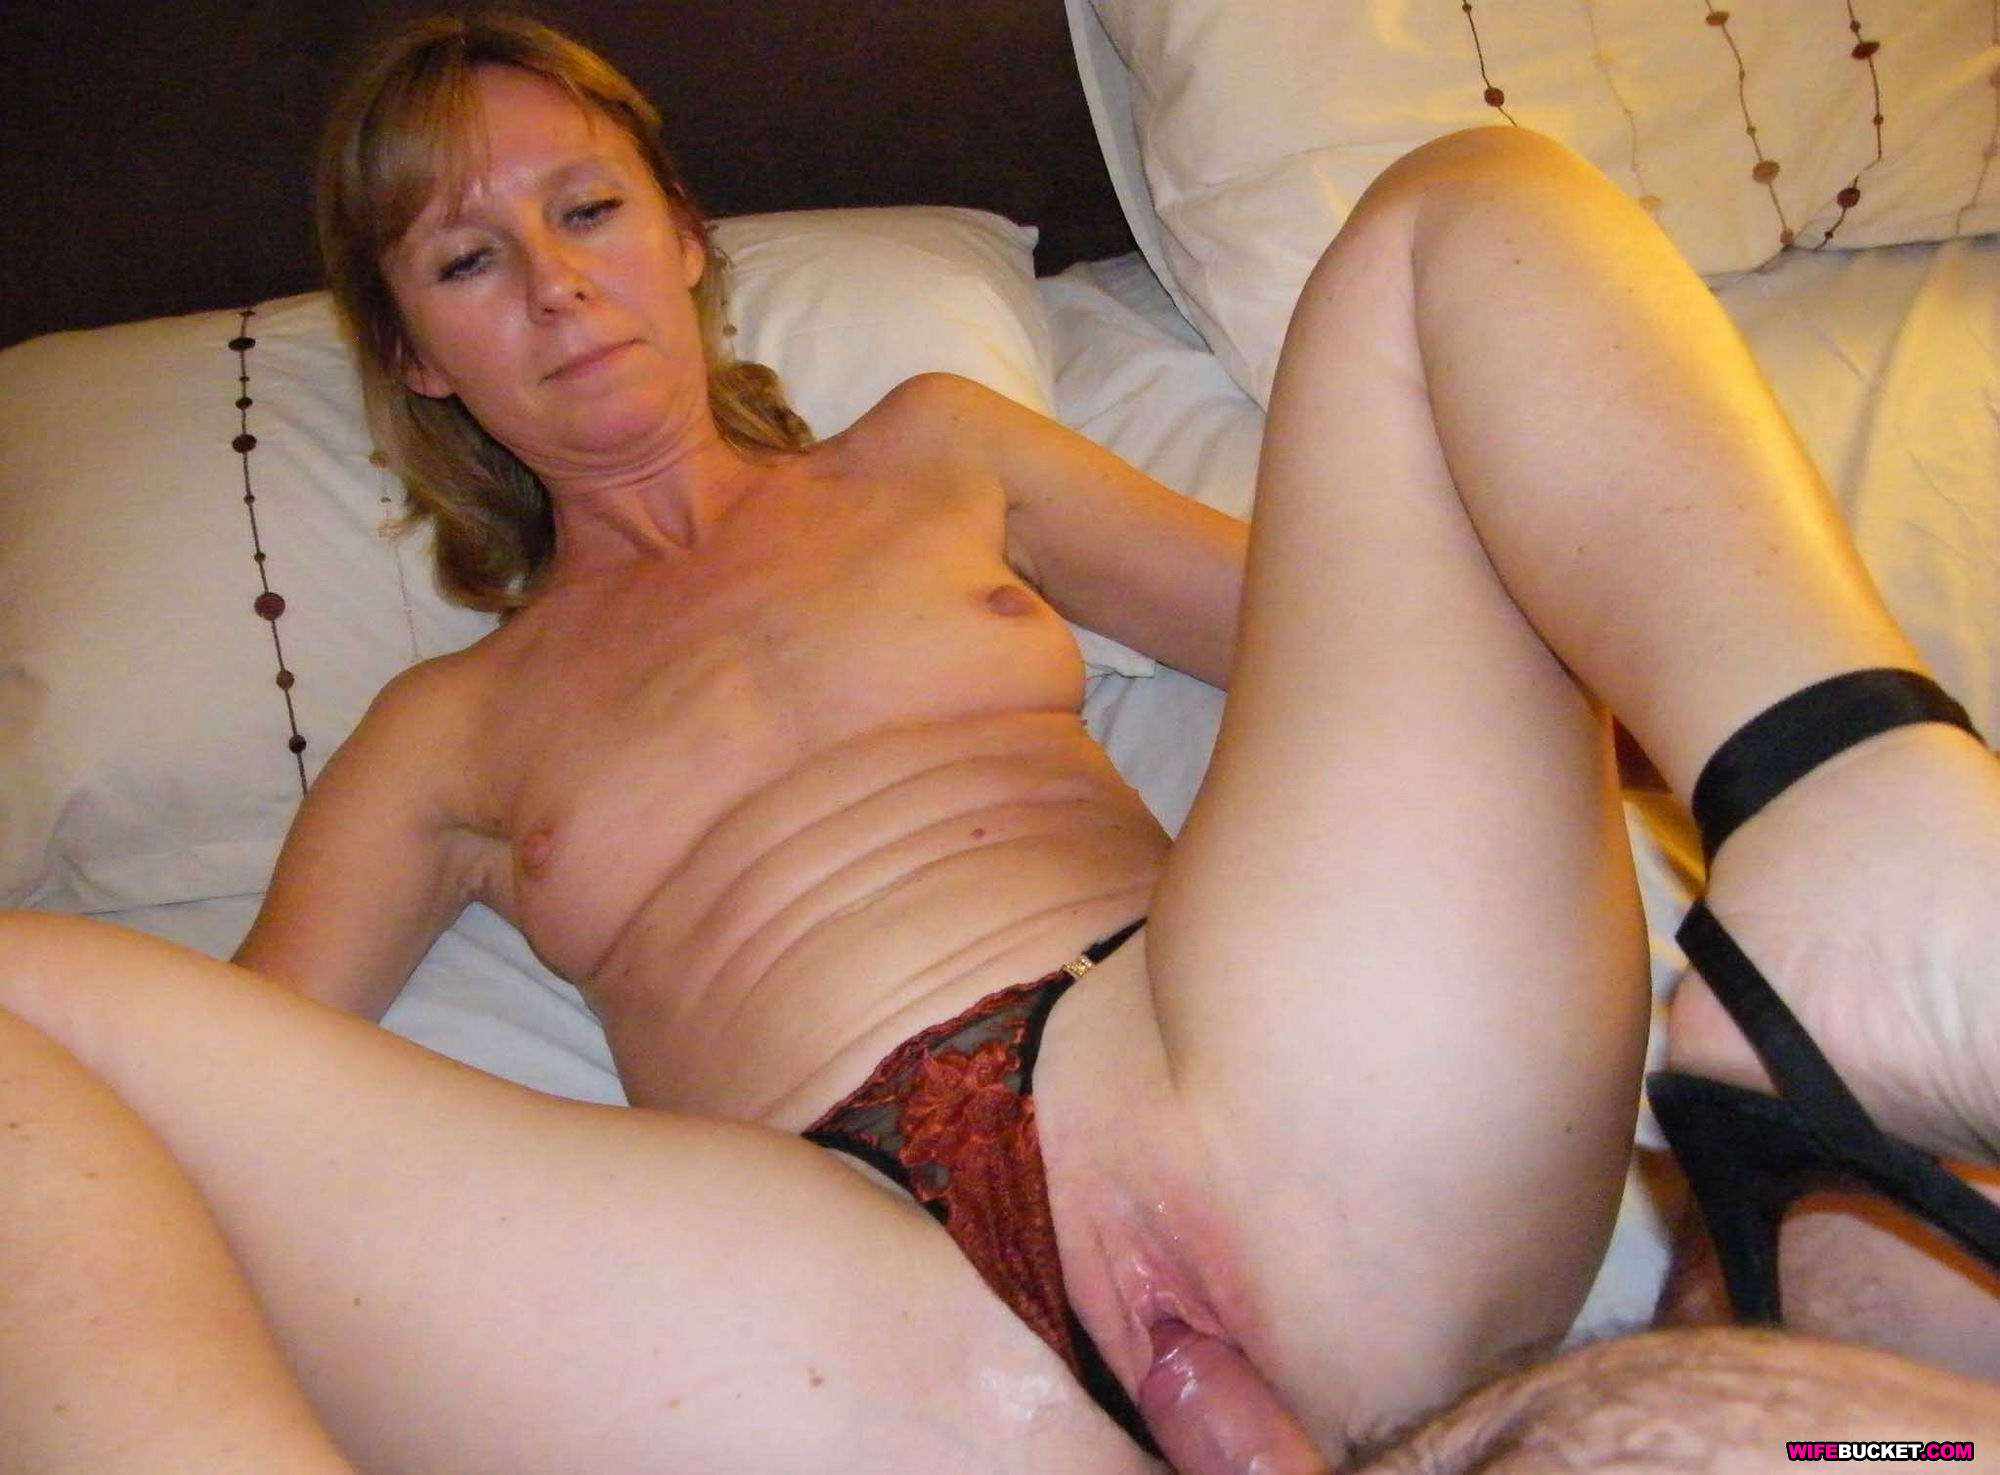 image Mature wife cheating on husband with farmer boy